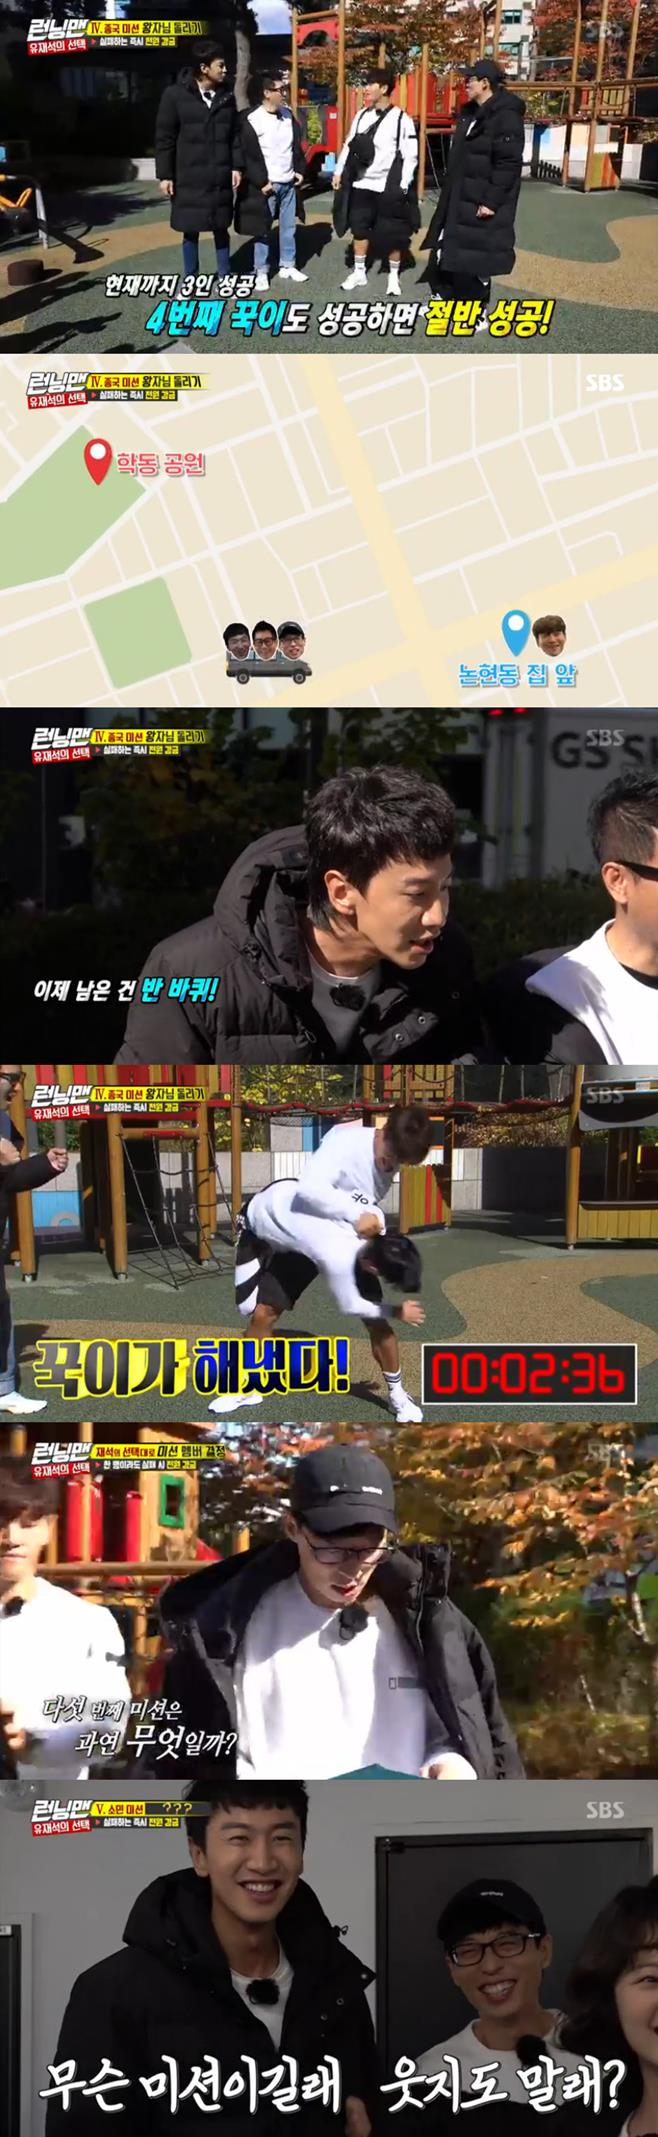 <p> Running Manin that way Haha of mission failure as a 8 member all Incarceration.</p><p>18 days afternoon broadcast SBS TV Running ManYoo Jae Suk the mission receives direct members to choose to the success should Yoo Jae Suk select the game was challenging.</p><p>Yoo Jae Suk is the power to write the mission to receive the Kim Jong Kook summoned. Lee Kwang-Soo, JI Suk Jin with Kim Jong Kook in front of their home as Yoo Jae Suk is him as a Playground.</p><p>Kim Jong Kook is a time limit of 30 seconds on Yoo Jae Suk and you need to turn Prince turn in the game at random. Kim Jong Kook is not their own reward but, Yoo Jae Suk, seemed rather to surprise everyone.</p><p>Stamina was lacking Kim Jong Kook this harder, but slashing with a very successful mission and I found myself admiring. Kim Jong Kooks body and clung on to was Yoo Jae Suk this toxic harder. Pay by Yoo Jae Suks catch up was Yoo Jae Suk is in pain harder and harder to so successfuland my heart rejoiced.</p><p>The following is the full address, amount of tax as turn of. Amount more as well ahead of five members, all were successful to hear more tension. Amount more as the celebritys eyes, nose, mouth and glue the photo to within 15 seconds should be aligned with the figures in the quiz challenge. He is a man, the correct answer is hit, and all greatly rejoiced.</p><p>Streak streak didnt last long. Common sense problem received the Yoo Jae Suk - Song JI Hyo and Haha, two and distressed. Yoo Jae Suk is astute Haha choose but in the end the one problem meet not in a mission failure.</p><p>Just waiting for Song JI Hyo game of chance not getting out of Incarceration. Blindfolded Incarceration whose members are largely stress and fuss to the laughter and bashing carnival Barker. Mystery in space trapped in a members here at the mission have been given, within the time limit must succeed members of embarrassment of throws that competence showed.</p>